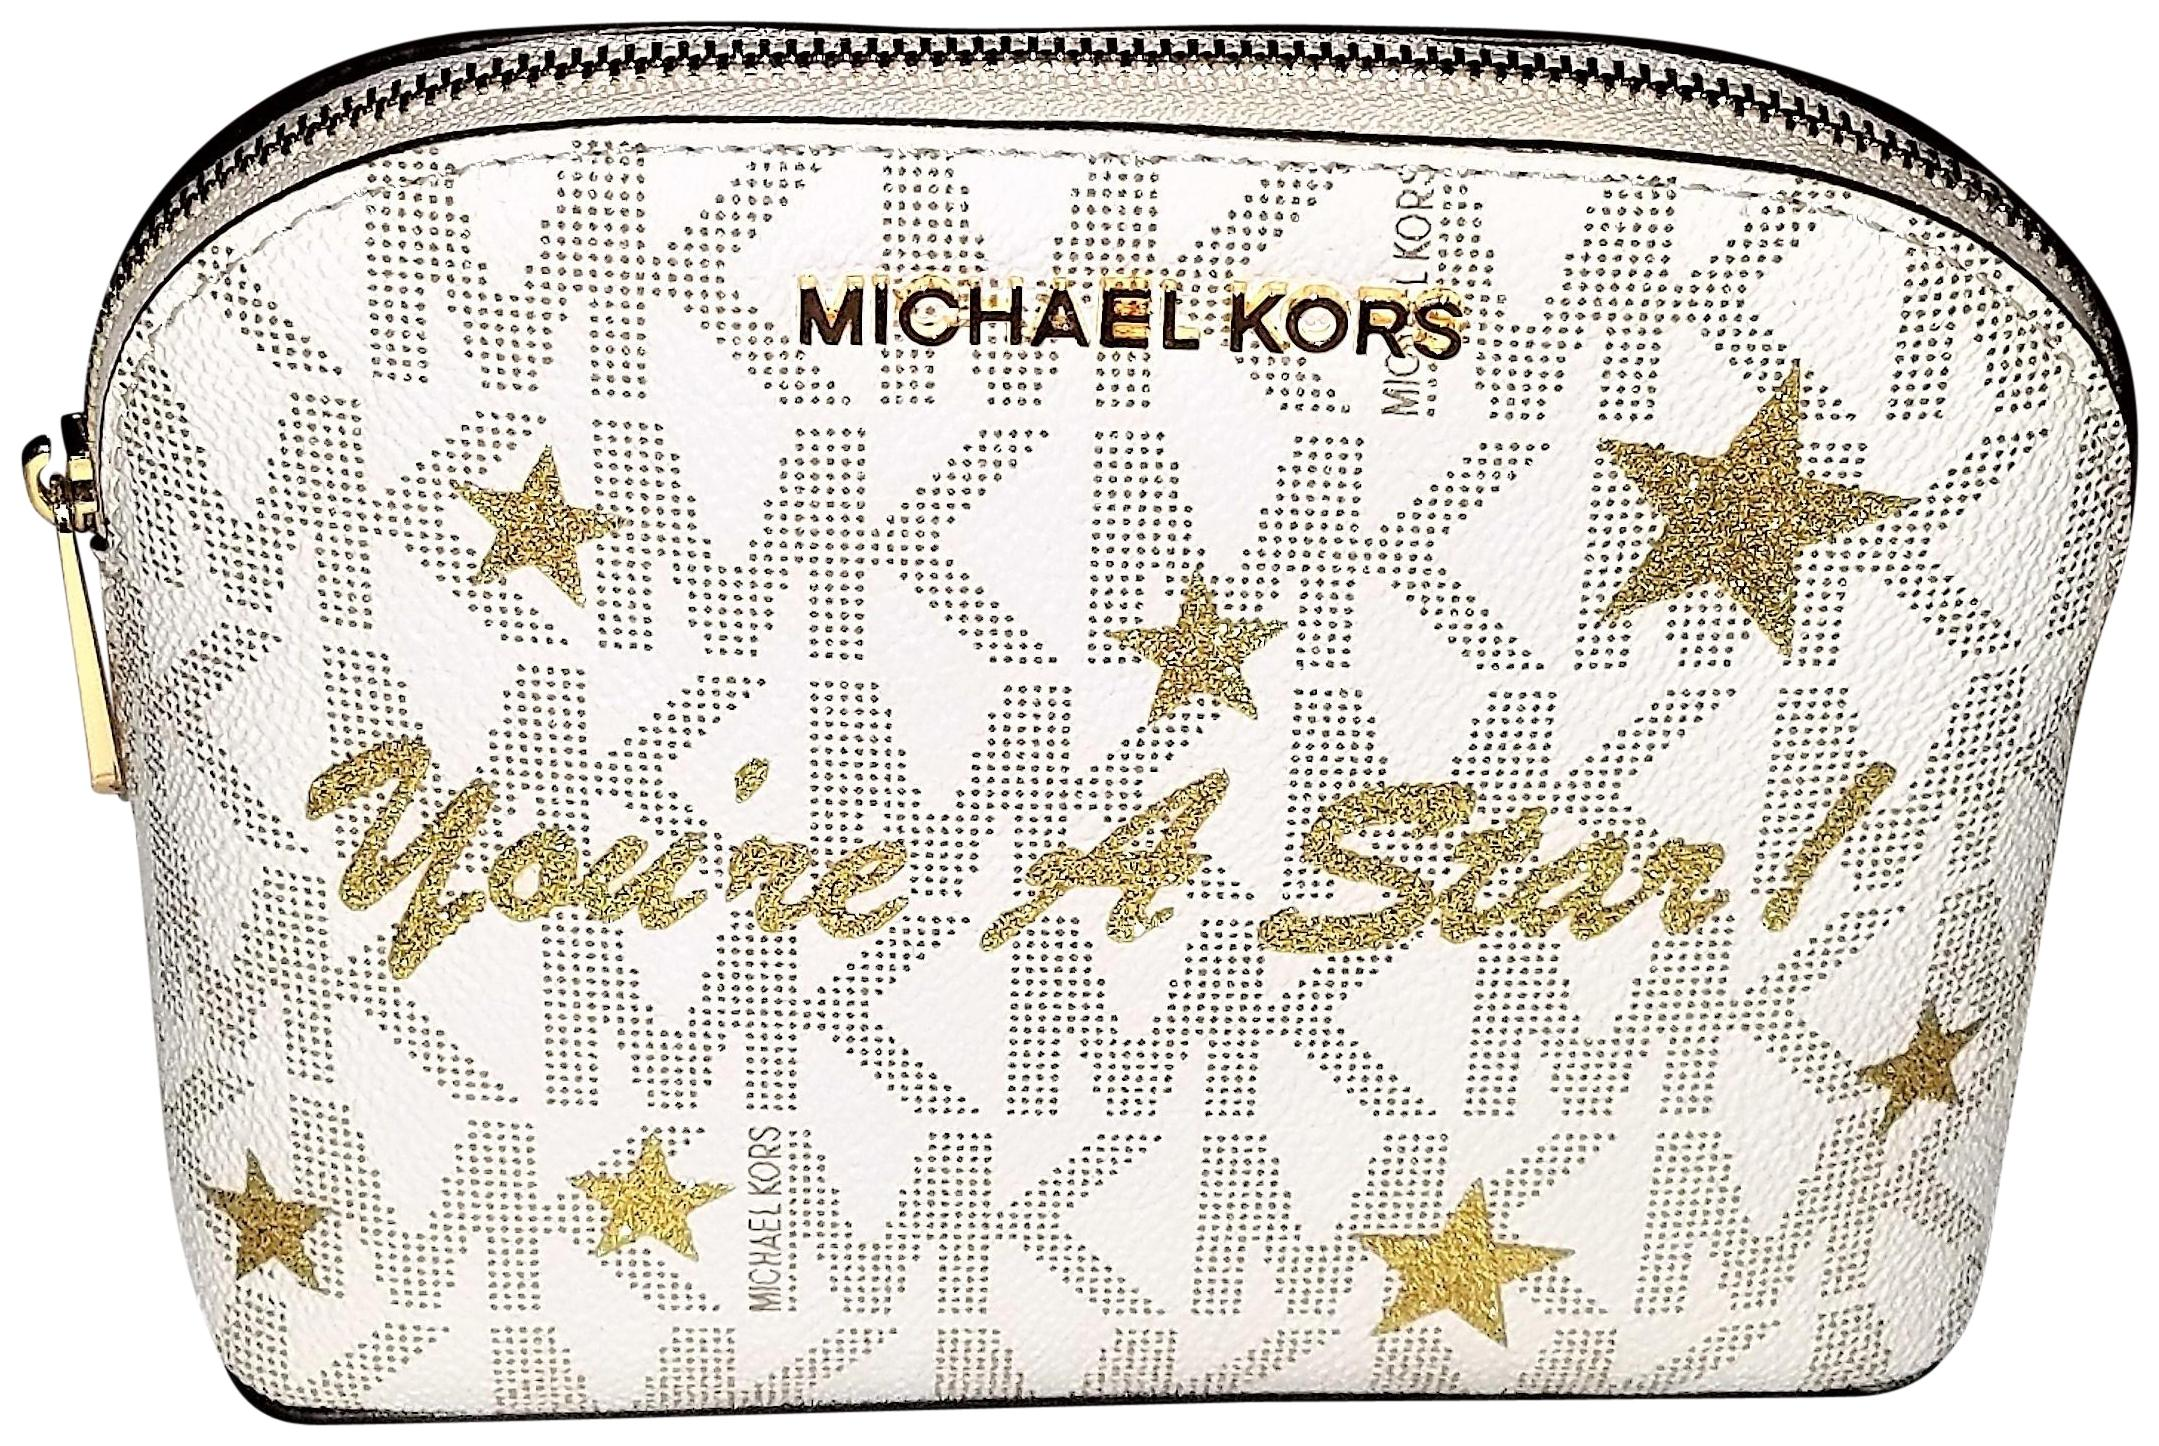 487629b0481e ... sweden michael kors new cindy travel pouch cosmetic gold star  illustration bag msrp 108 aae7f 0d324 ...